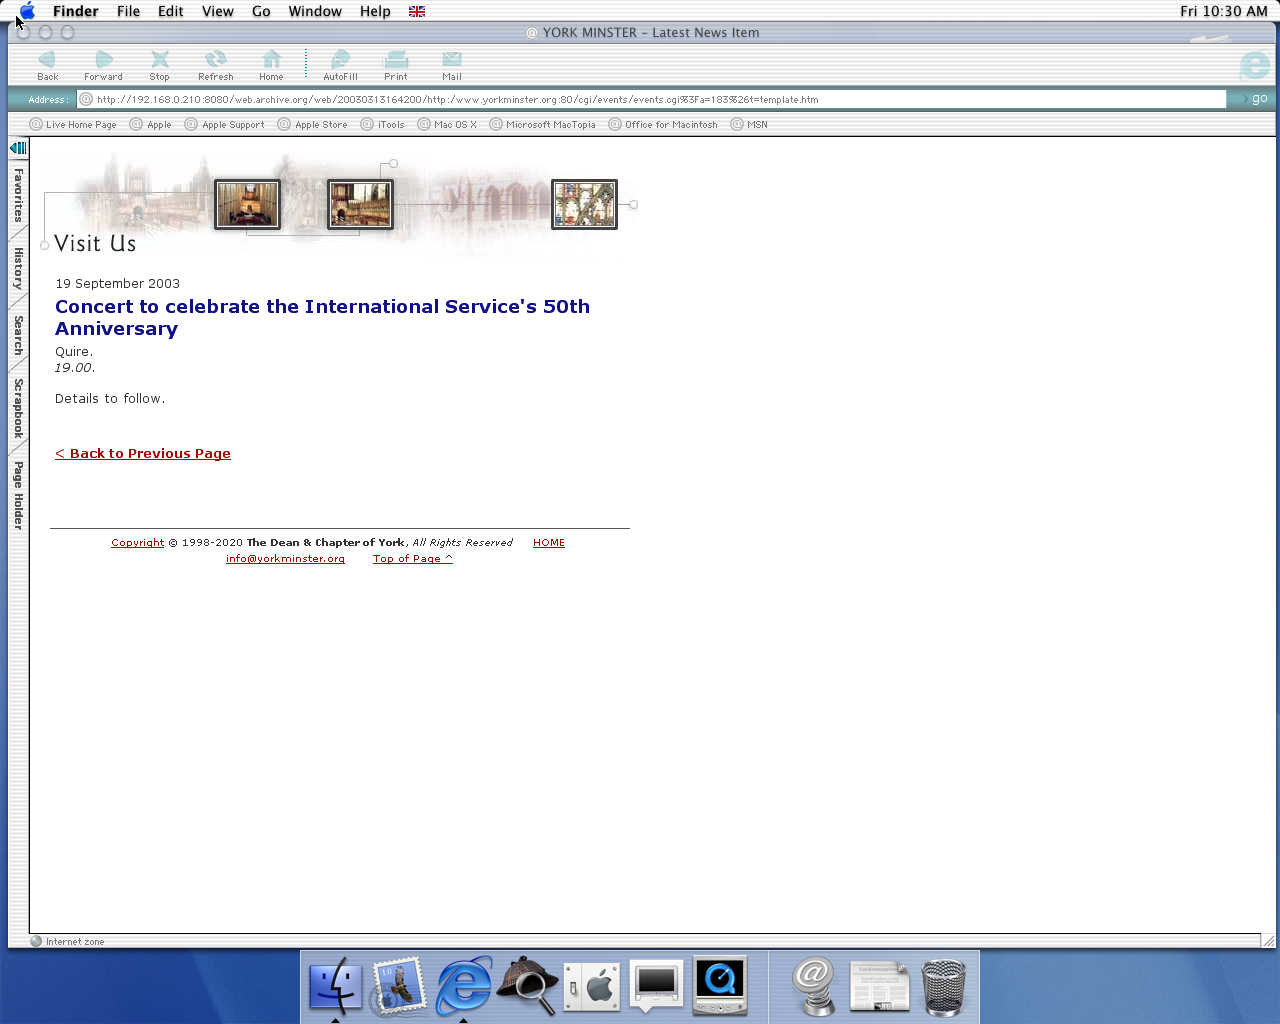 OS X 10.0 PPC with Microsoft Internet Explorer 5.1 for Mac Preview displaying a page from York Minster archived at March 13, 2003 at 16:42:00